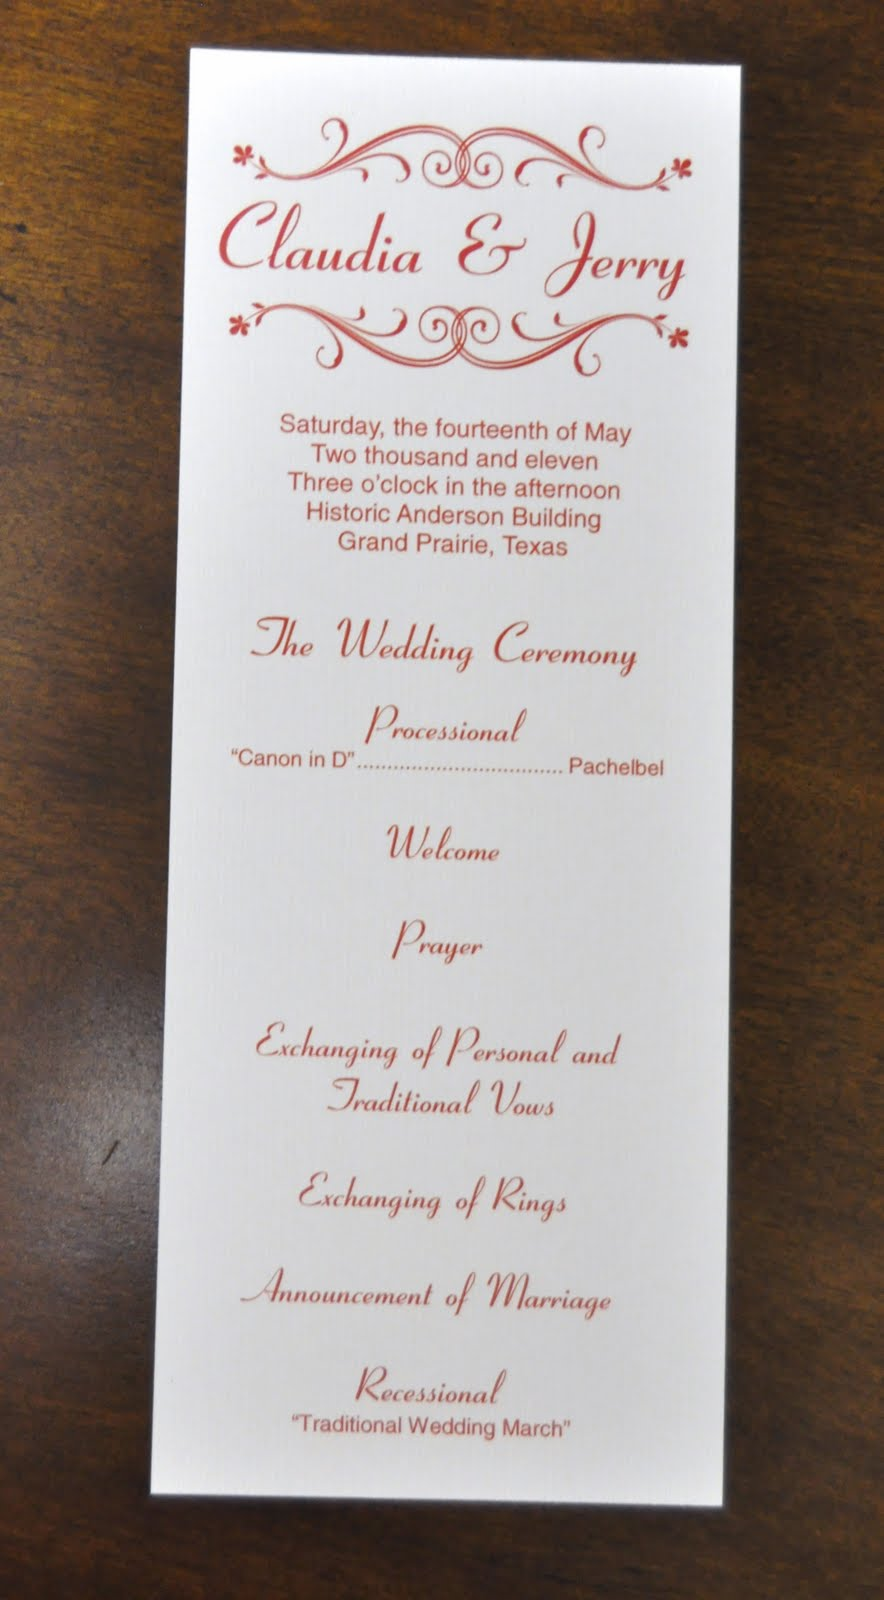 Sample Wedding Programs: Claudia + Jerry Wedding Programs